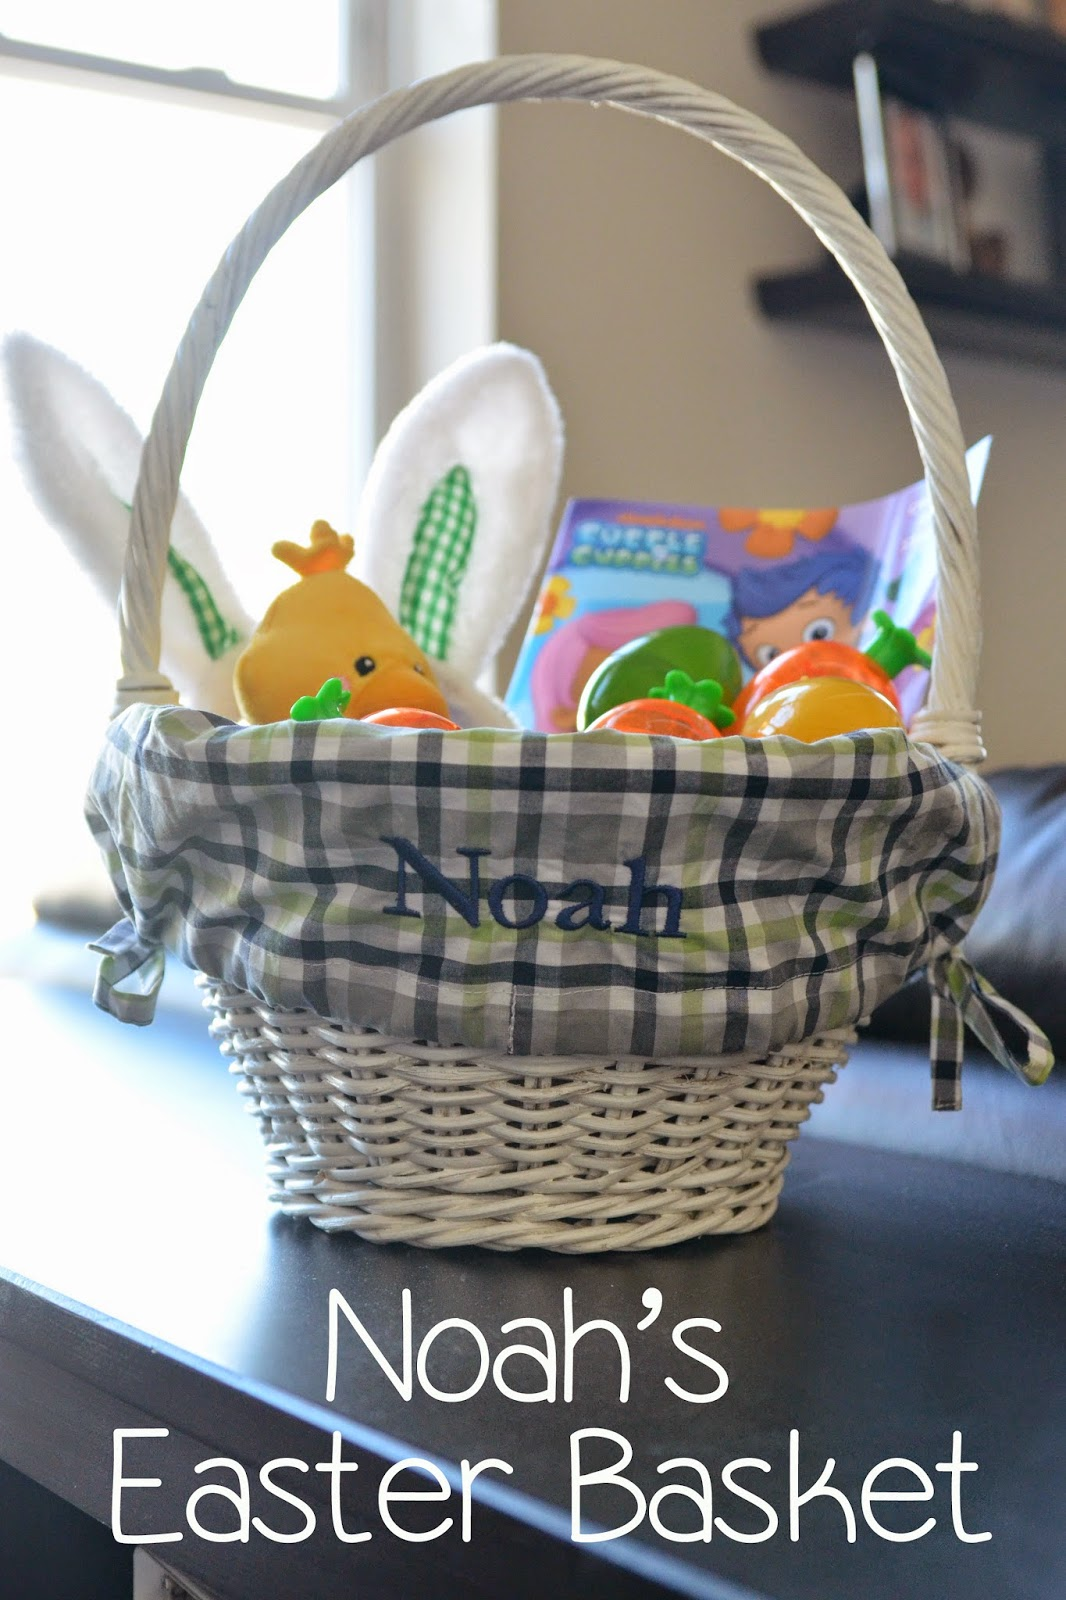 The adventure starts here noahs easter basket last year we celebrated noahs first easter both sets of grandparents got noah easter baskets filled with goodies since noah was only 4 12 months old negle Gallery